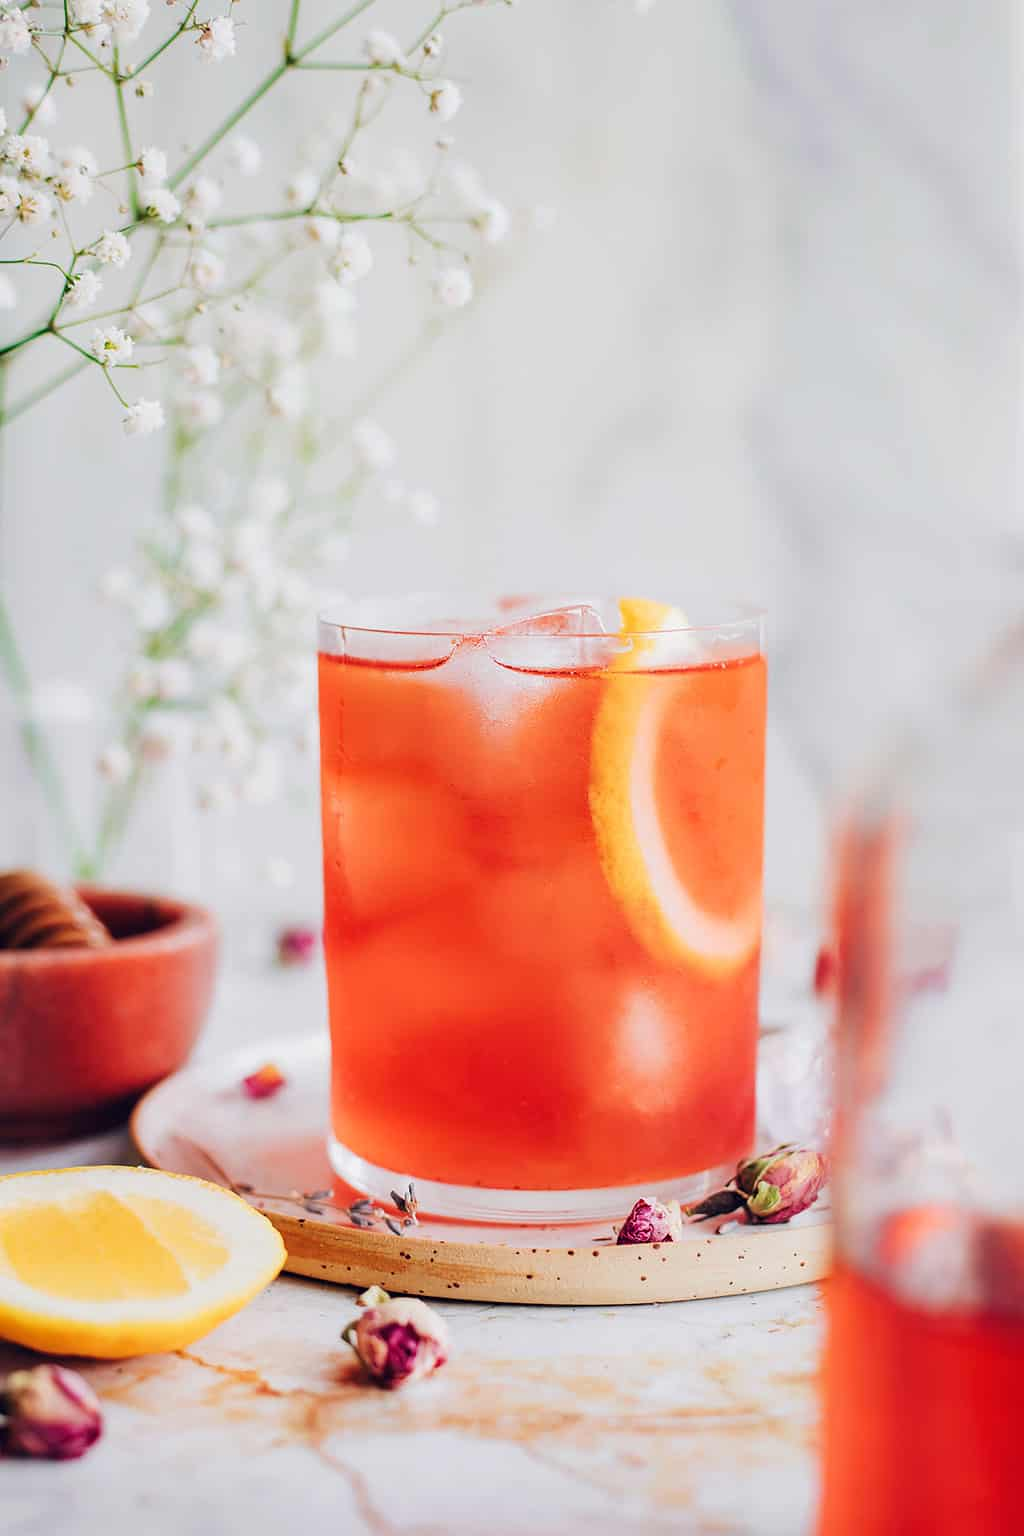 How to make sun tea with roiboos and rose